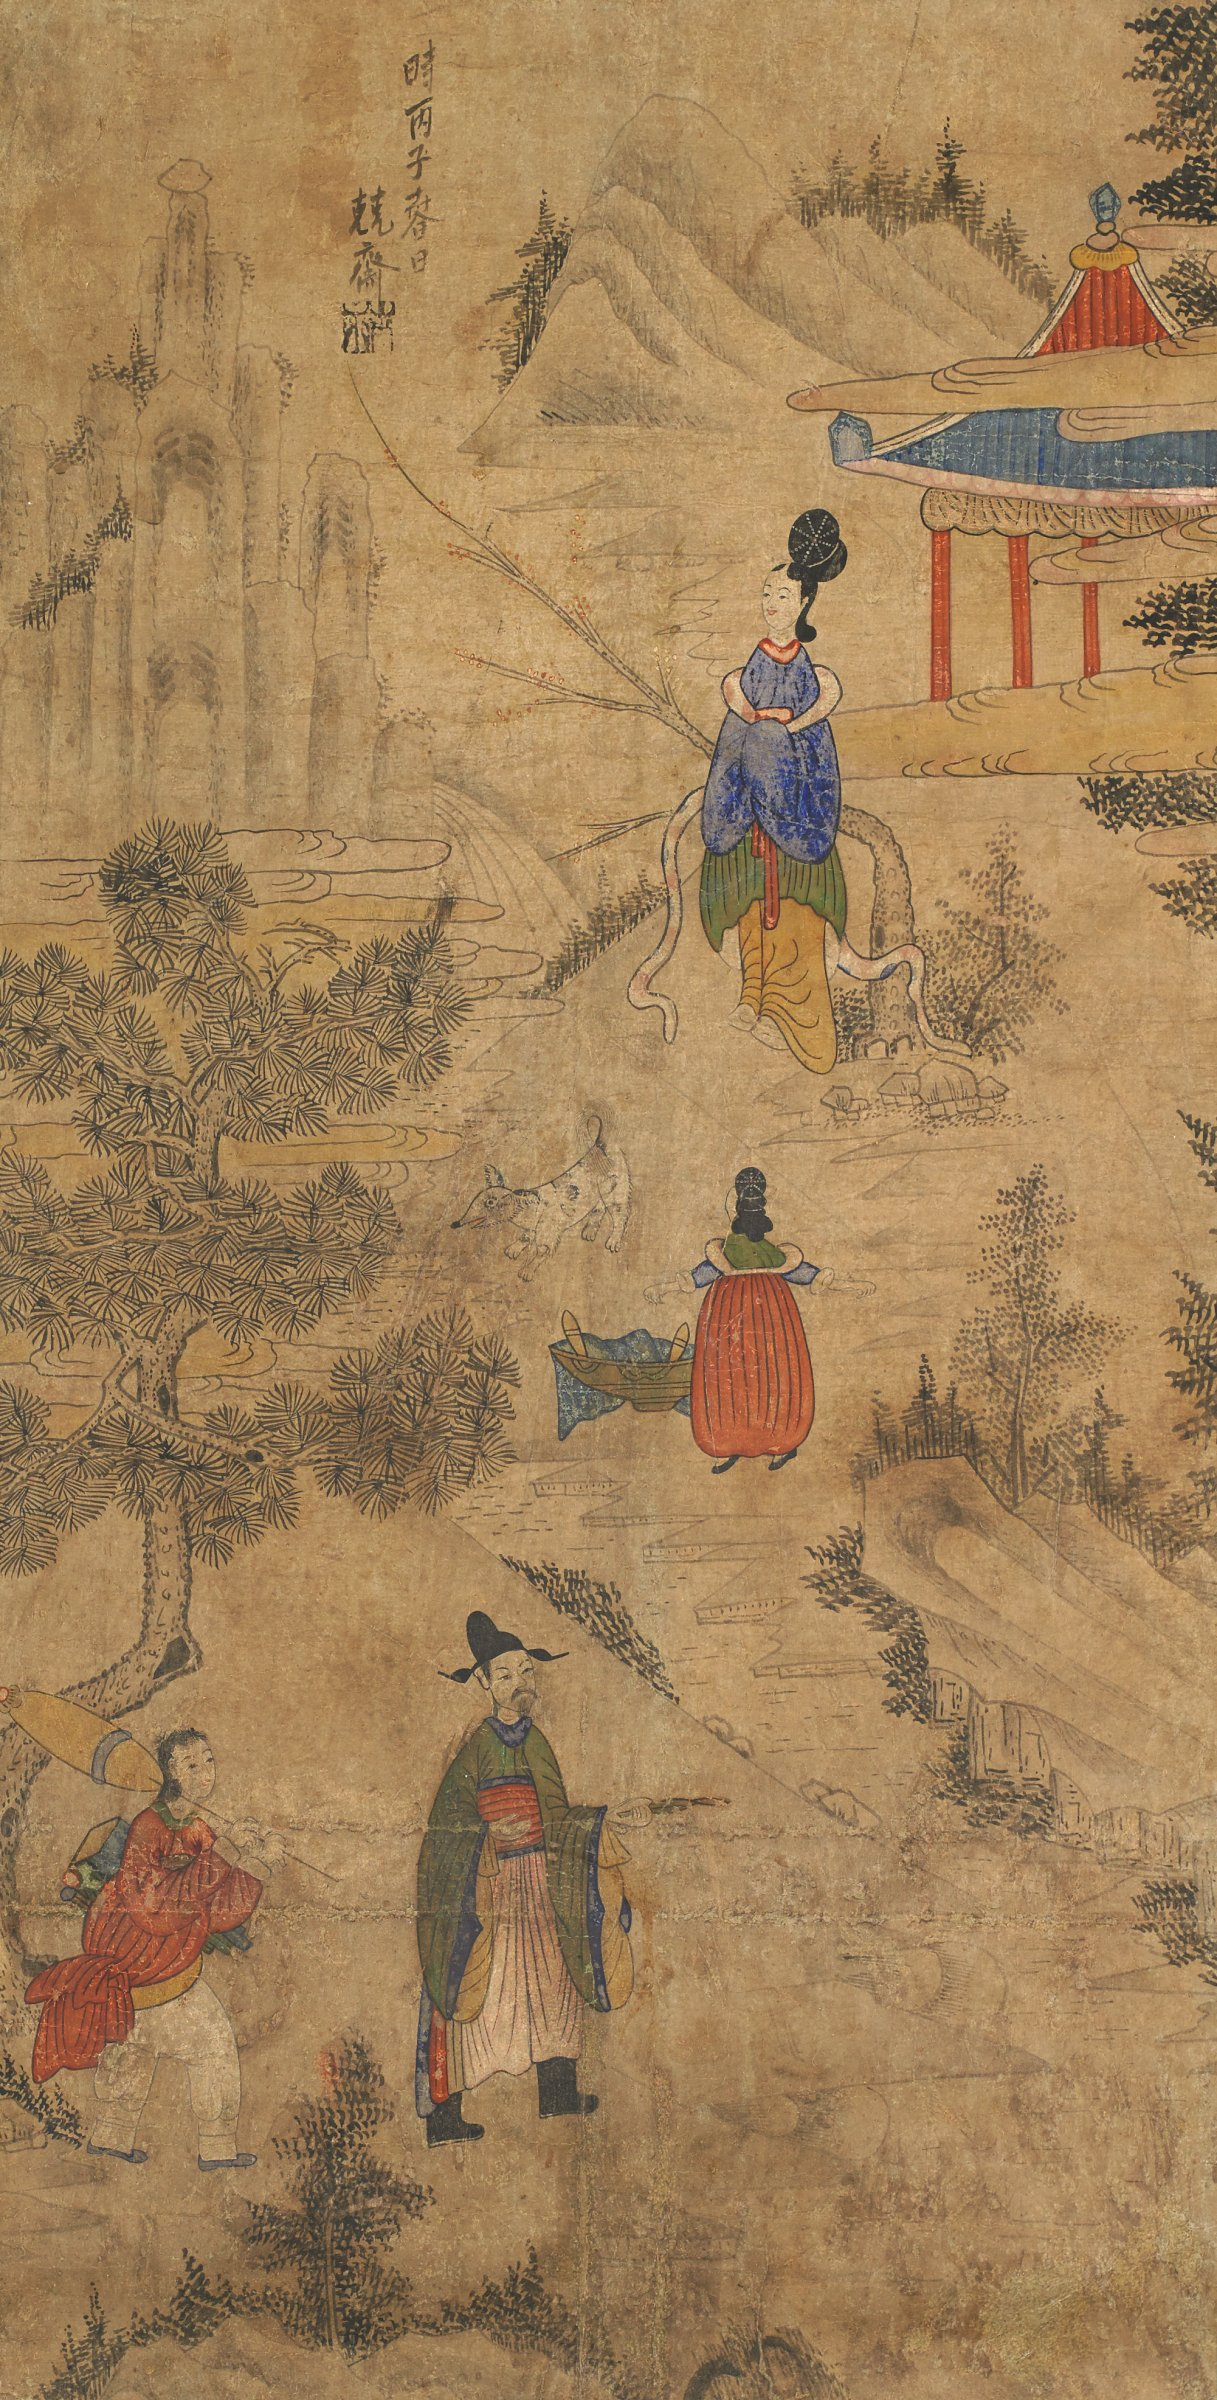 """Yang Soyu Holding Poem on Cinnamon Leaf as Maidservent Tells Ga Chunun of His Approach at Jeong GyeongpaeScene from """"The Nine Cloud Dream""""Gentleman and servant walking in foreground"""